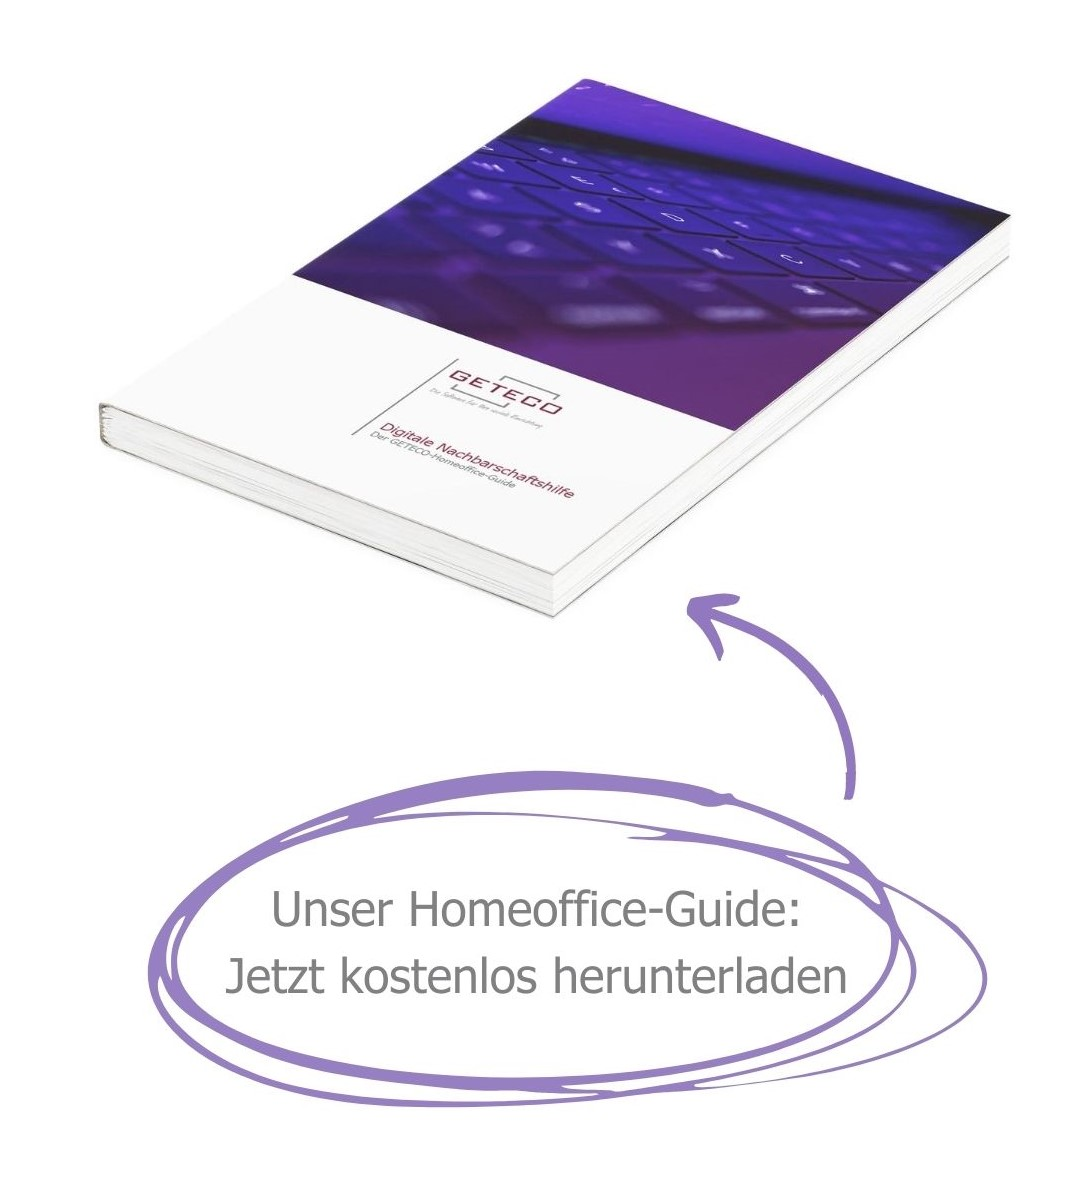 Der GETECO-Homeoffice-Guide